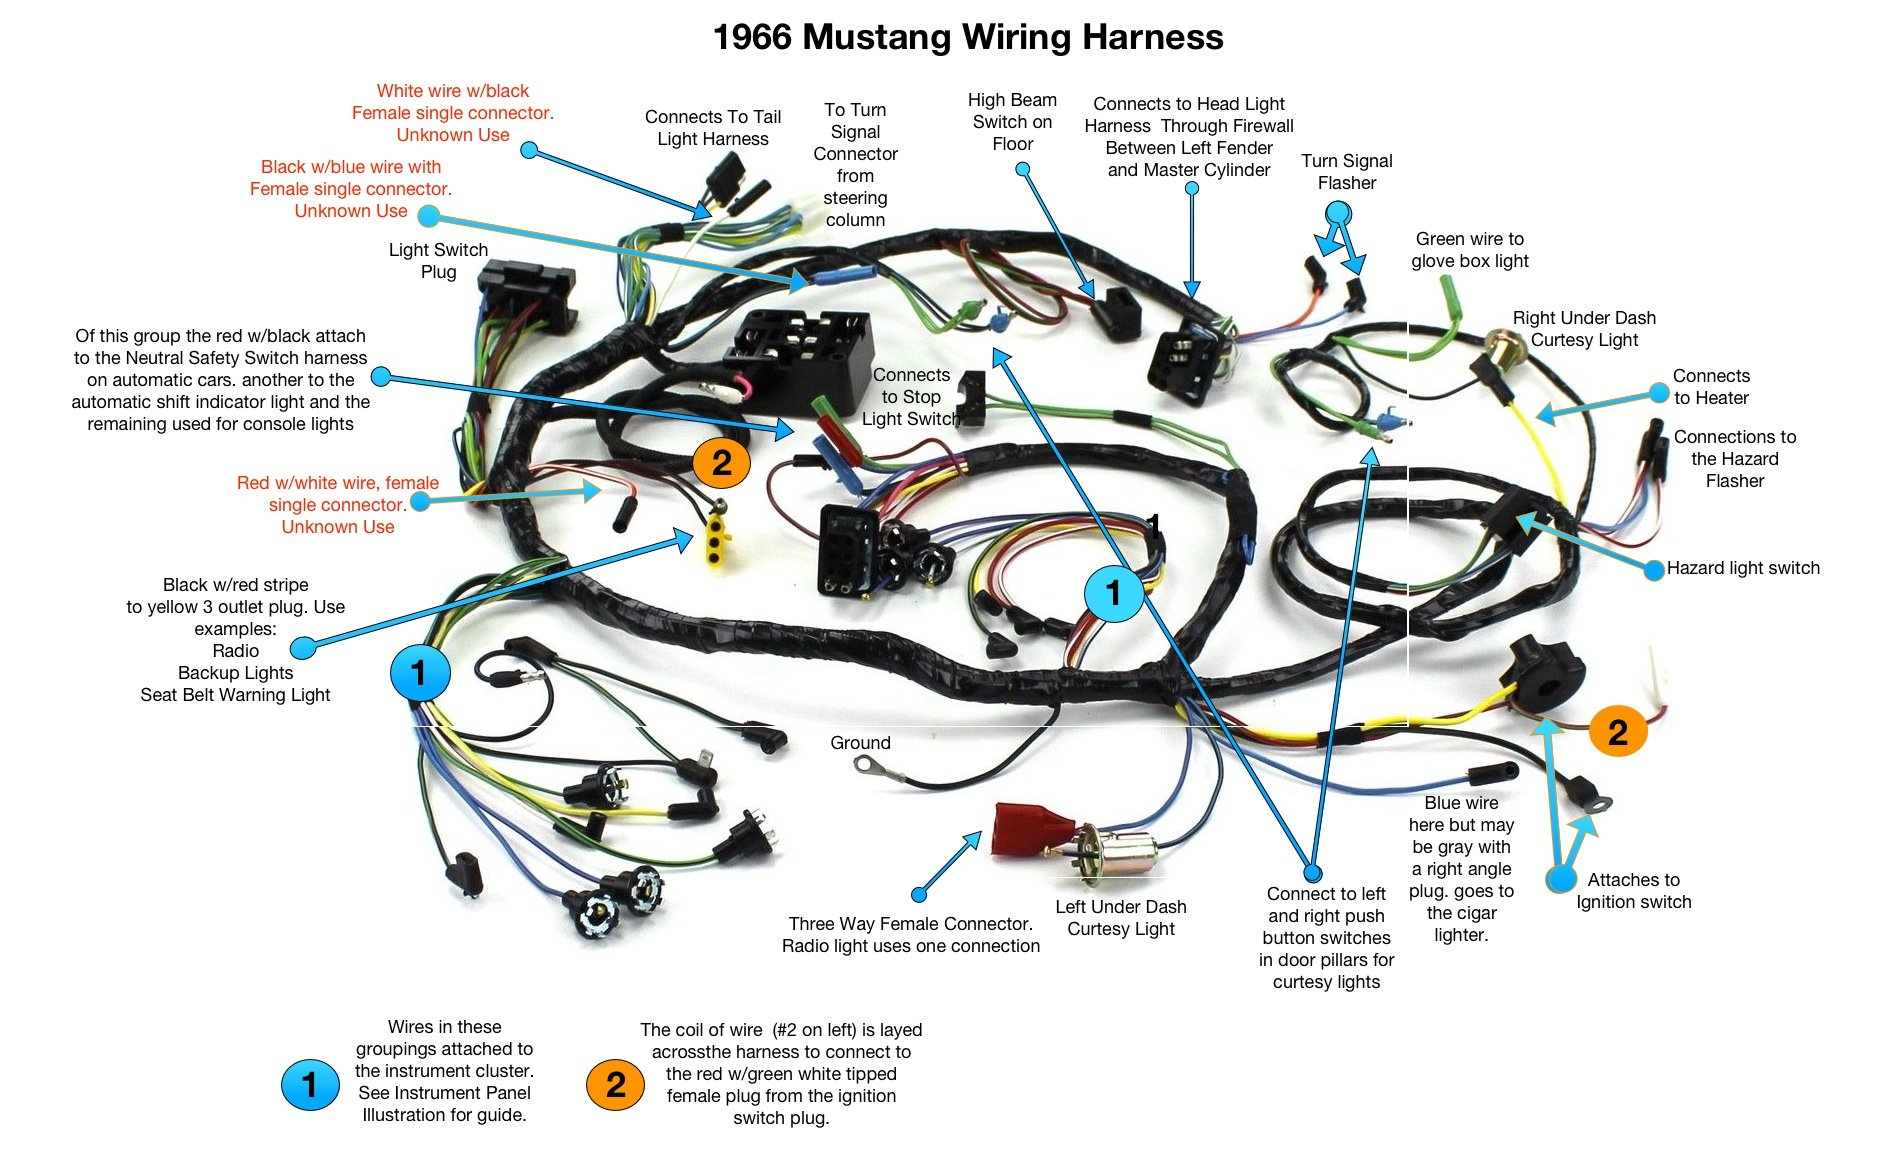 91 Mustang Radio Wiring Library Rx 8 Car Stereo Wire Diagrams 66 Harness Diagram Ford Forum Rh Allfordmustangs Com 1999